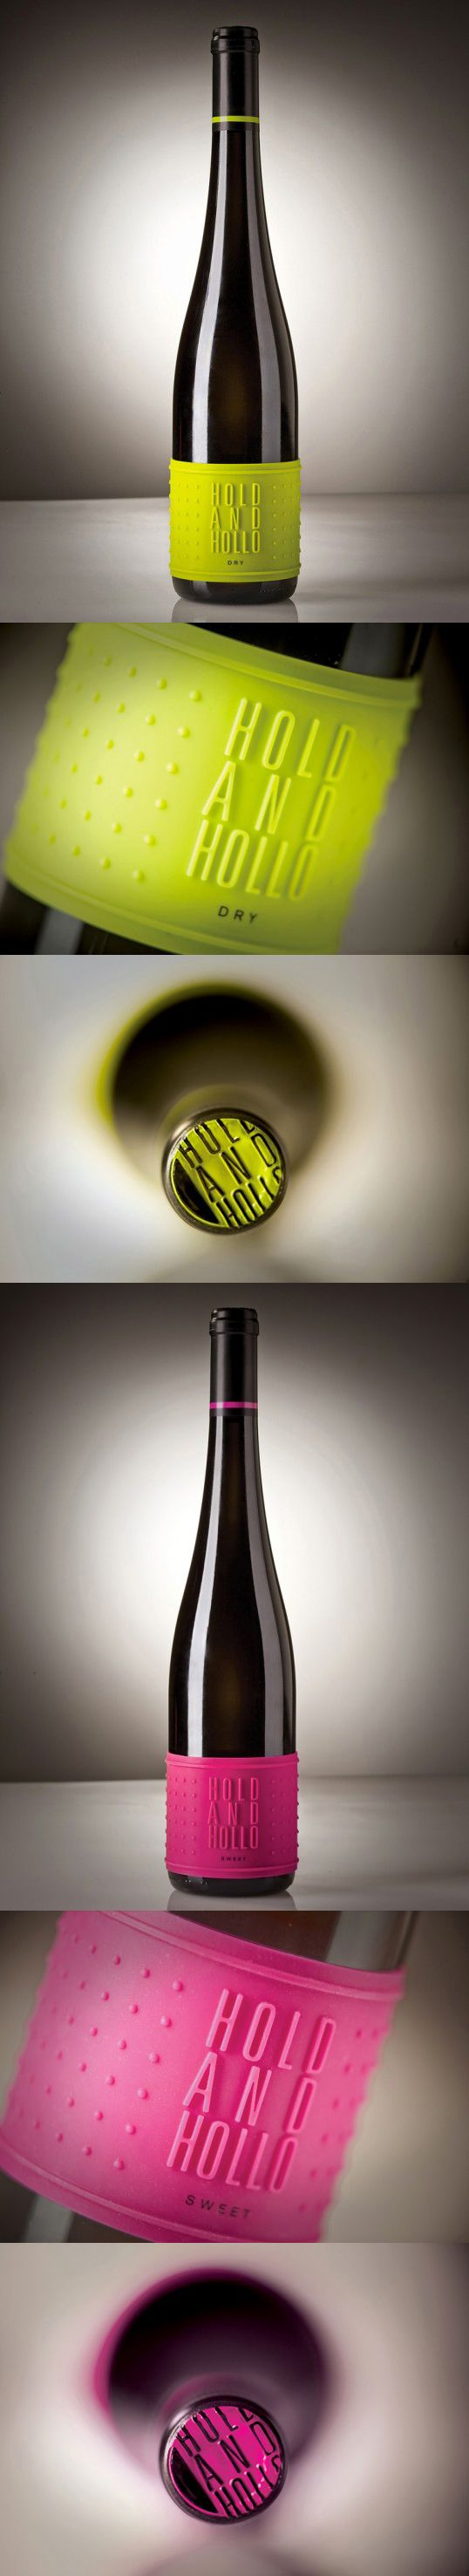 Chouette package très proche de ForLife #package #vin site : http://lovelypackage.com/hold-and-hollo/